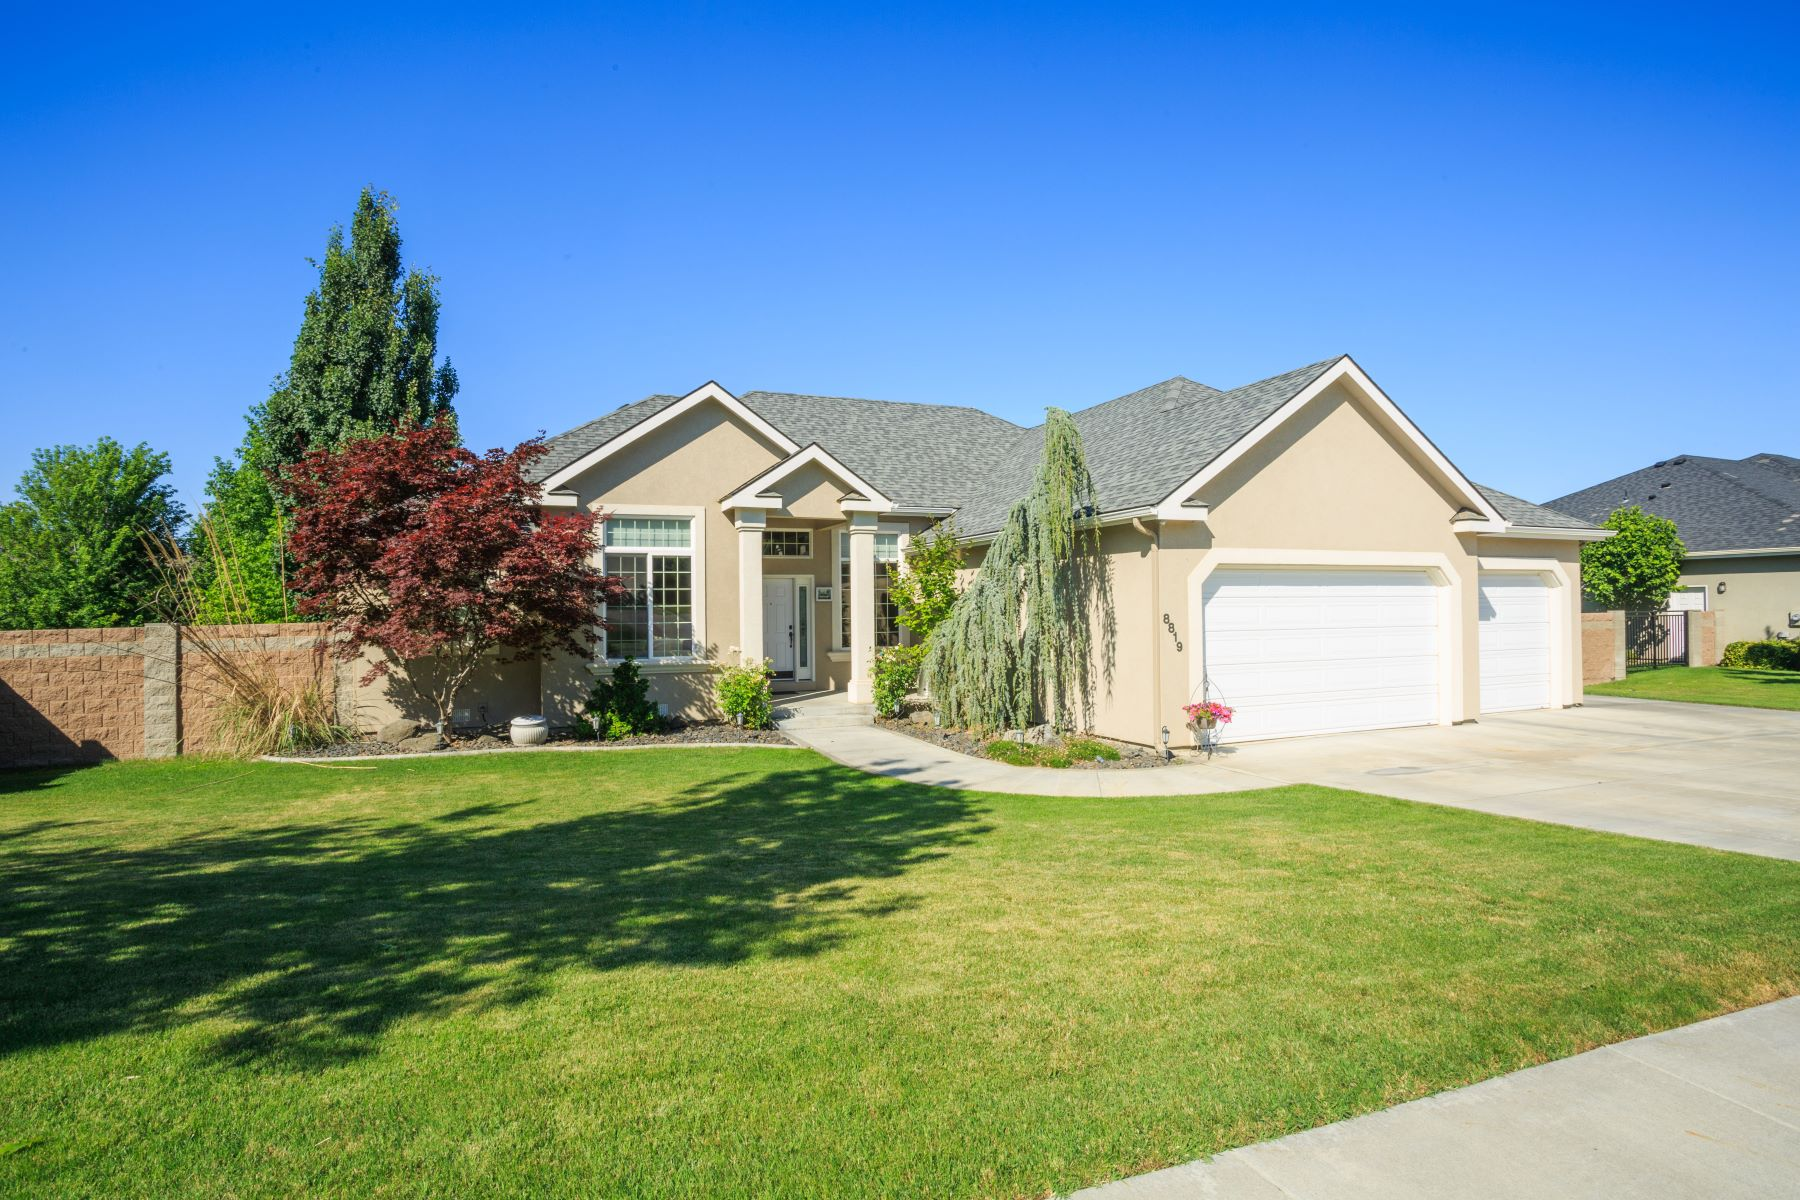 Single Family Home for Sale at Wonderful rambler basement in Hansen Park! 8819 W. 3rd Ave Kennewick, Washington 99336 United States